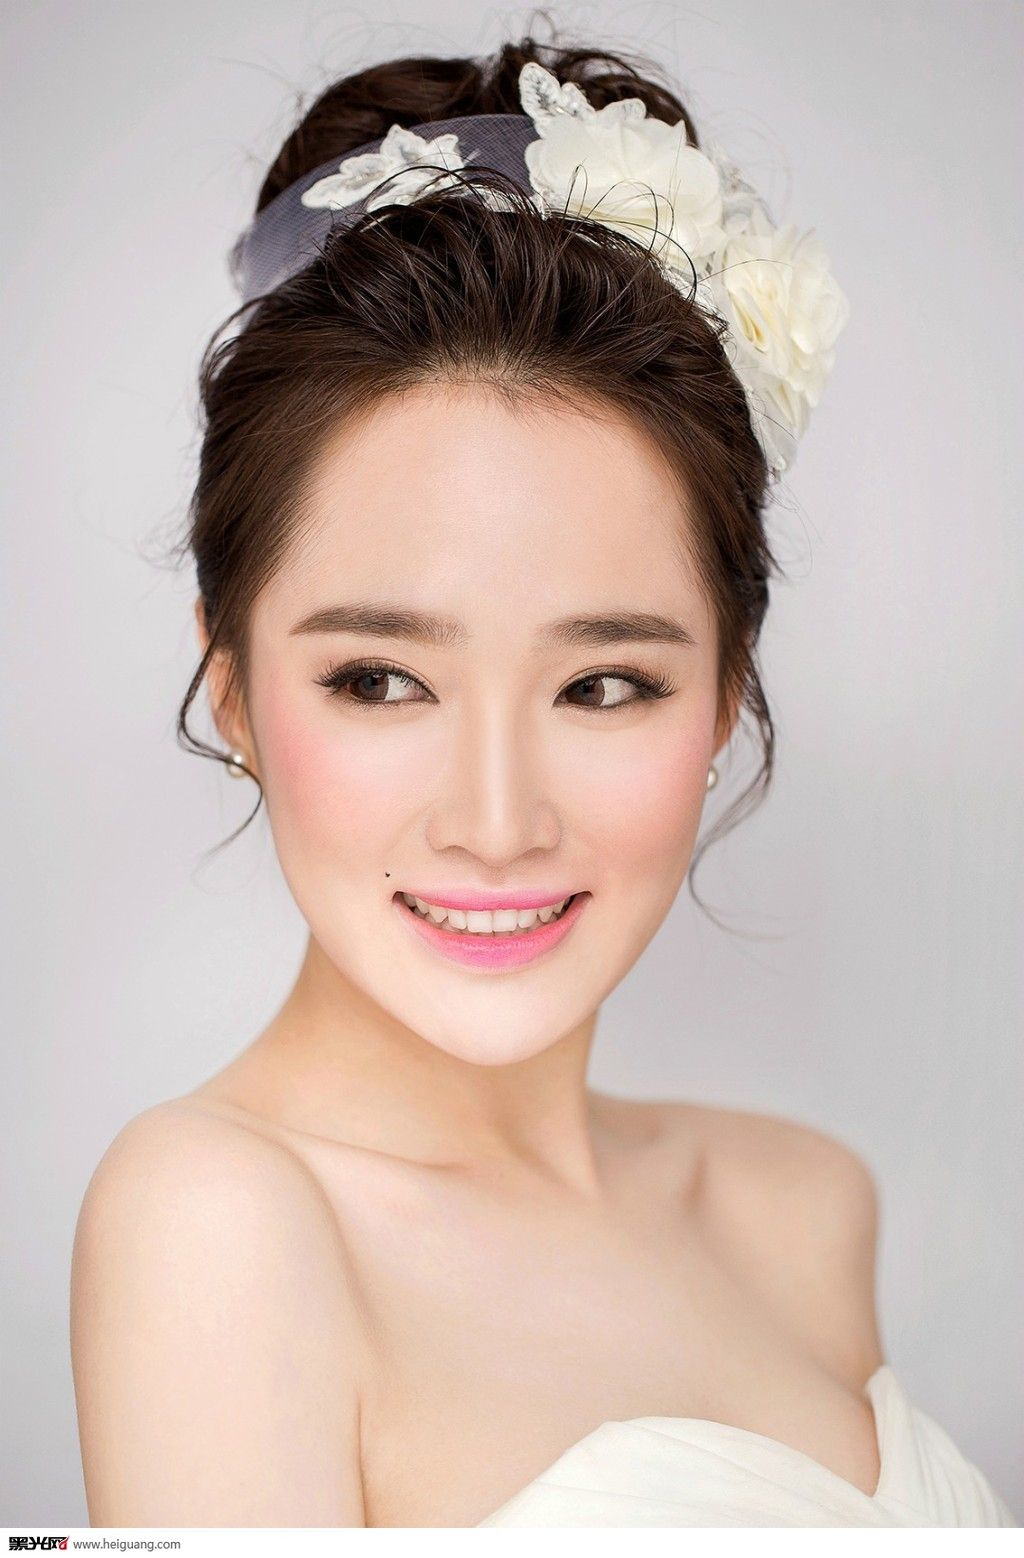 wedding hair styles with veil 新娘妝容 搜尋 like wedding hairstyle or makeup 4409